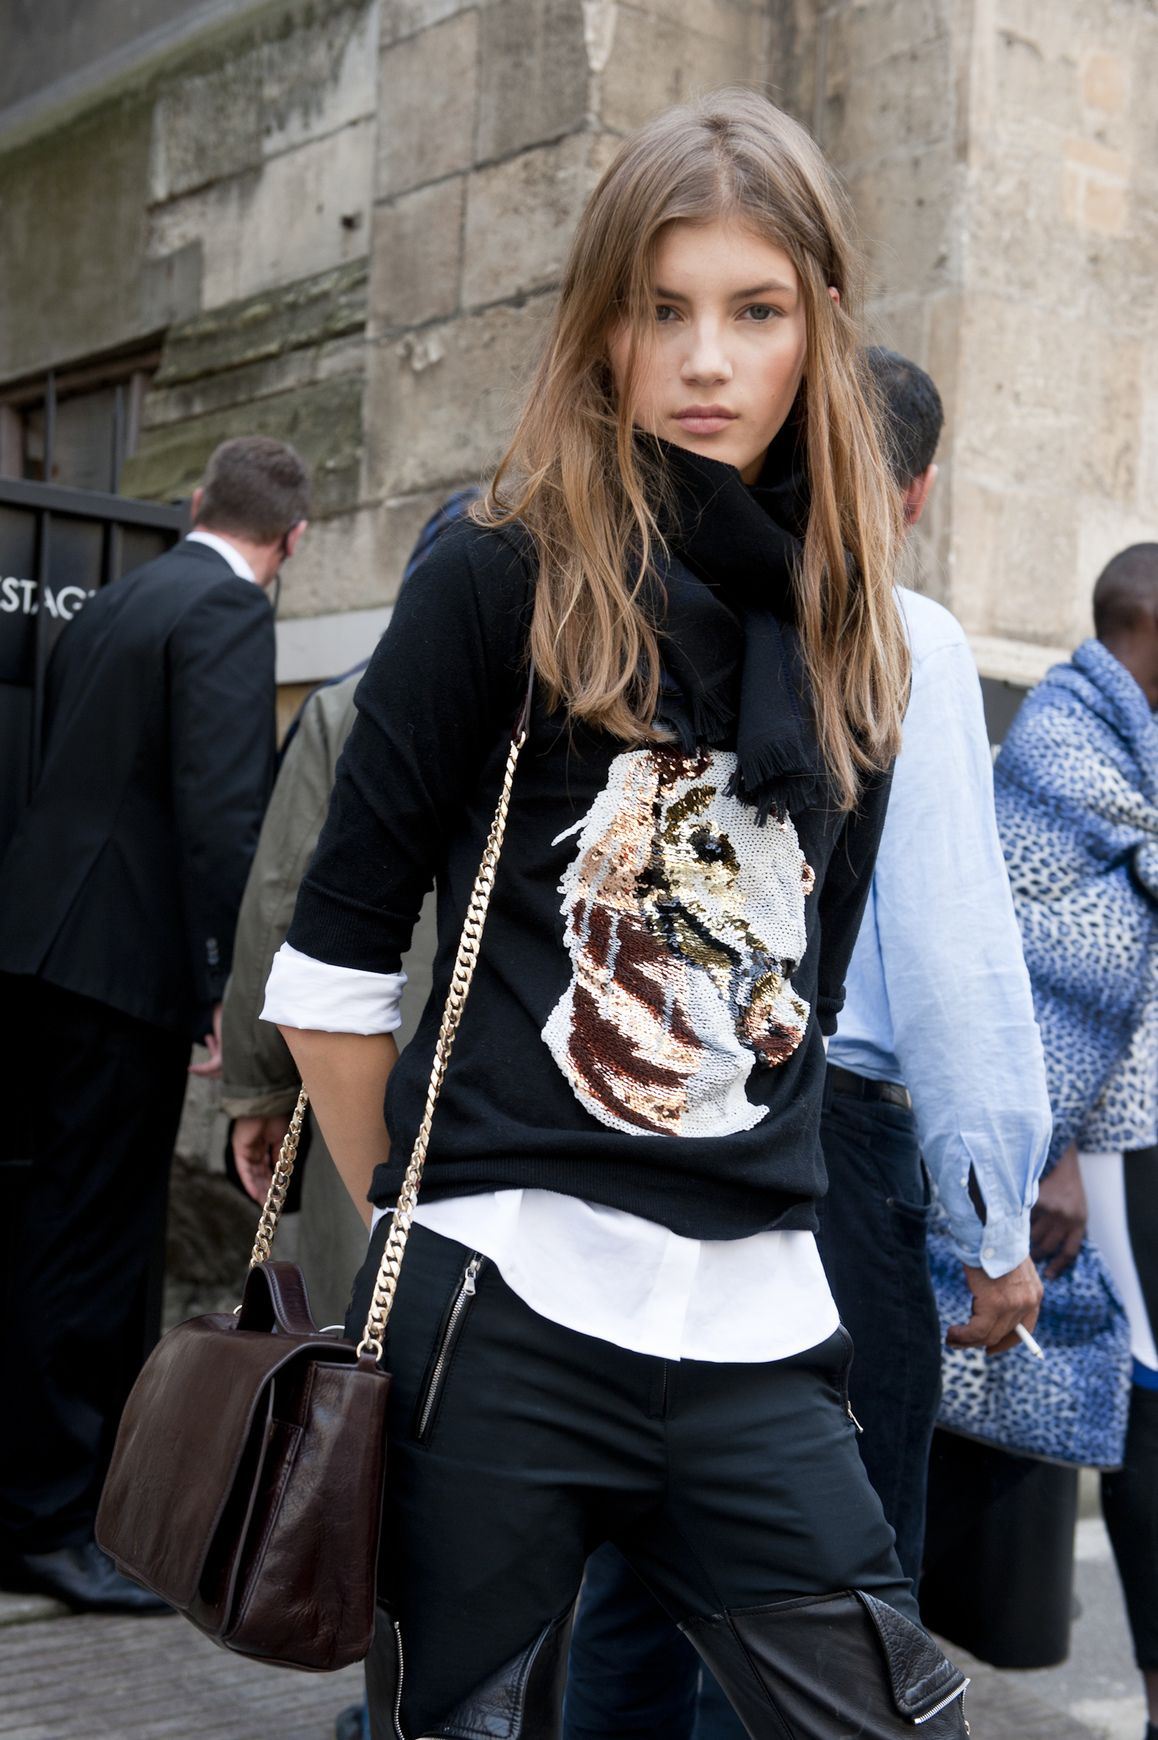 130 Incredible Model Street Style Photos | StyleCaster